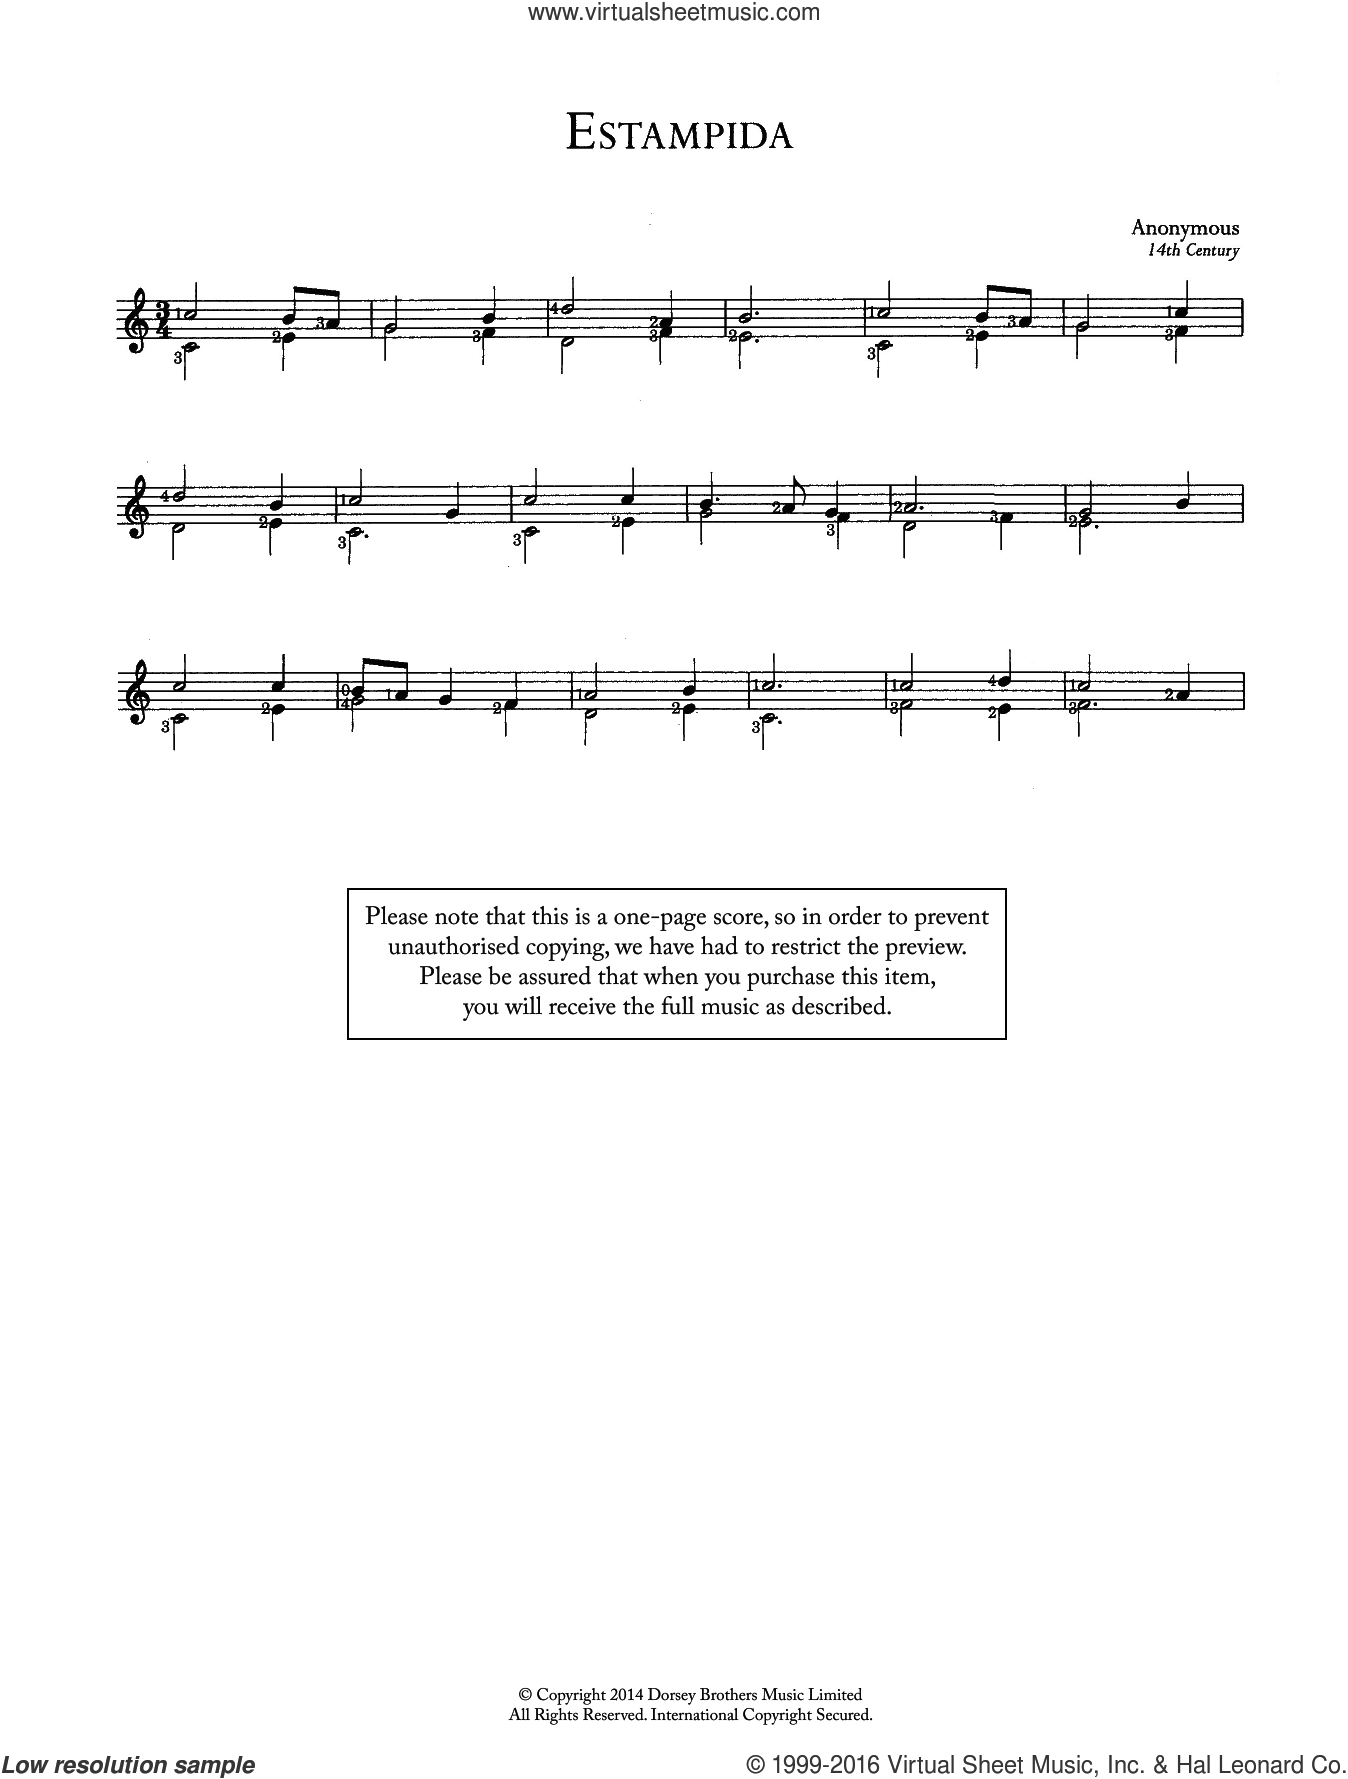 Estampida sheet music for guitar solo (chords) by Anonymous. Score Image Preview.